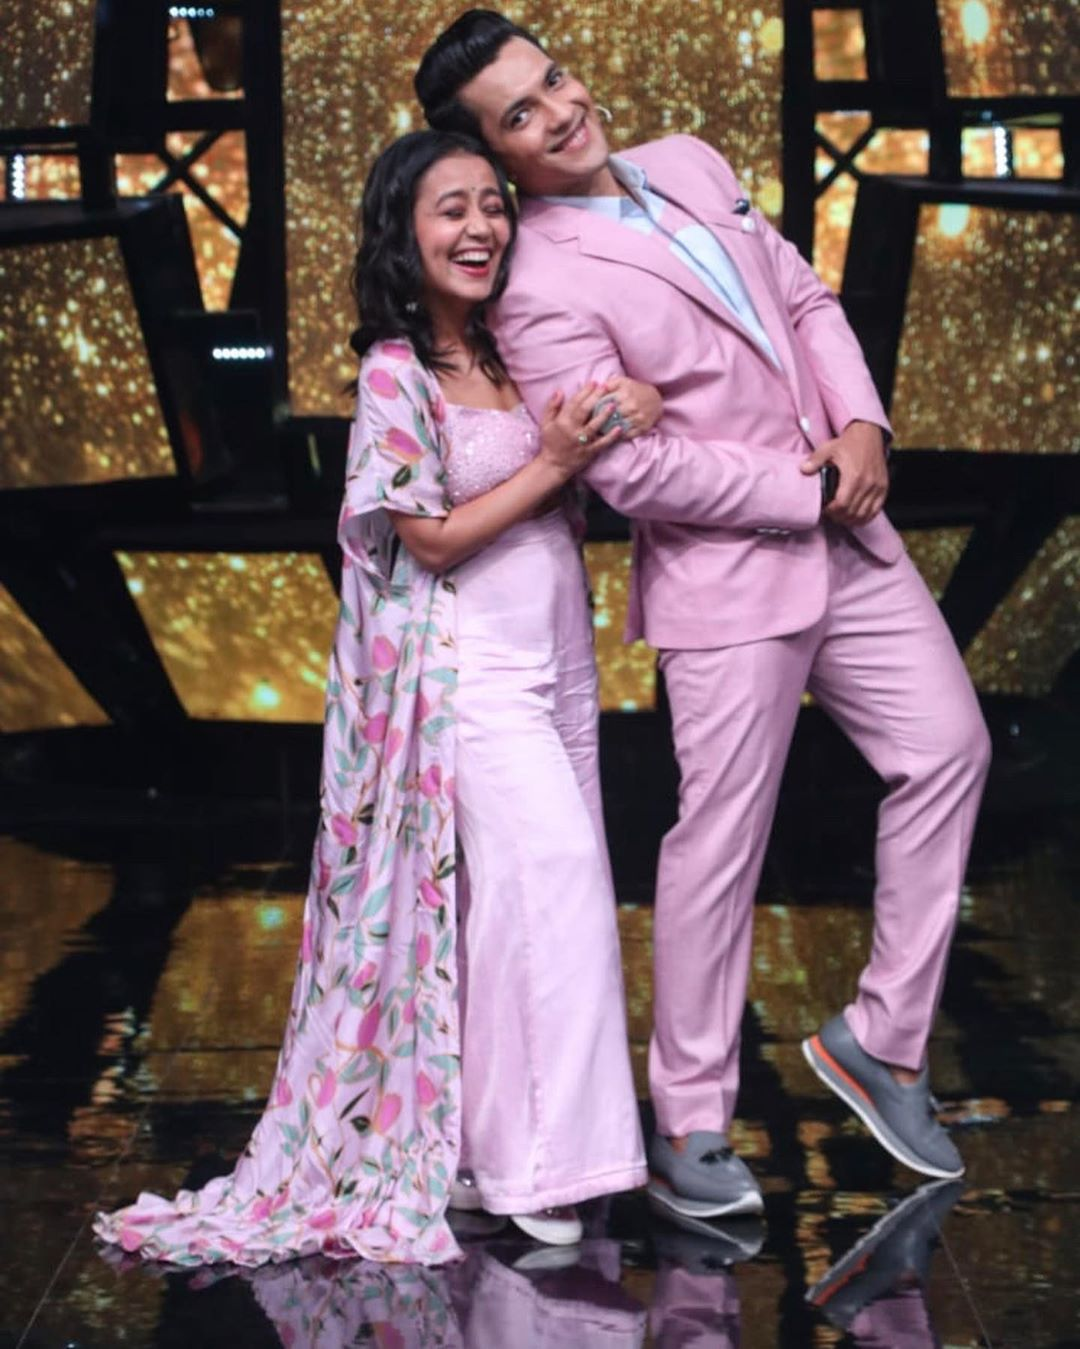 Neha Kakkar Completes A Part Of Aditya Narayan S Heart Amidst Their February 14 Marriage Rumours